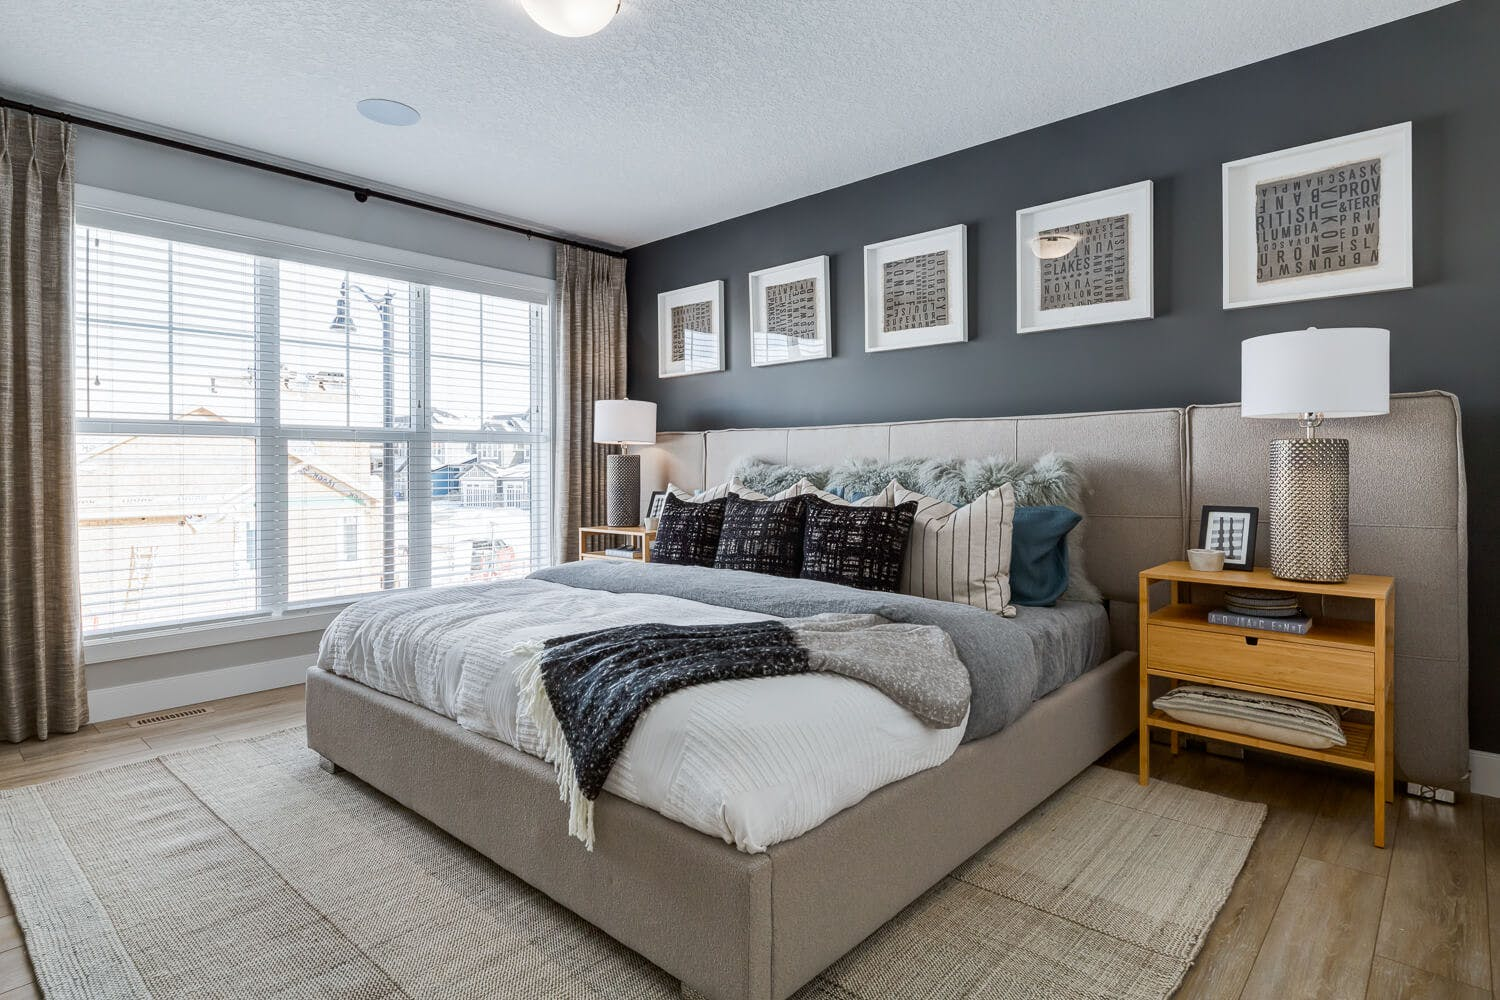 A bedroom of a showhome